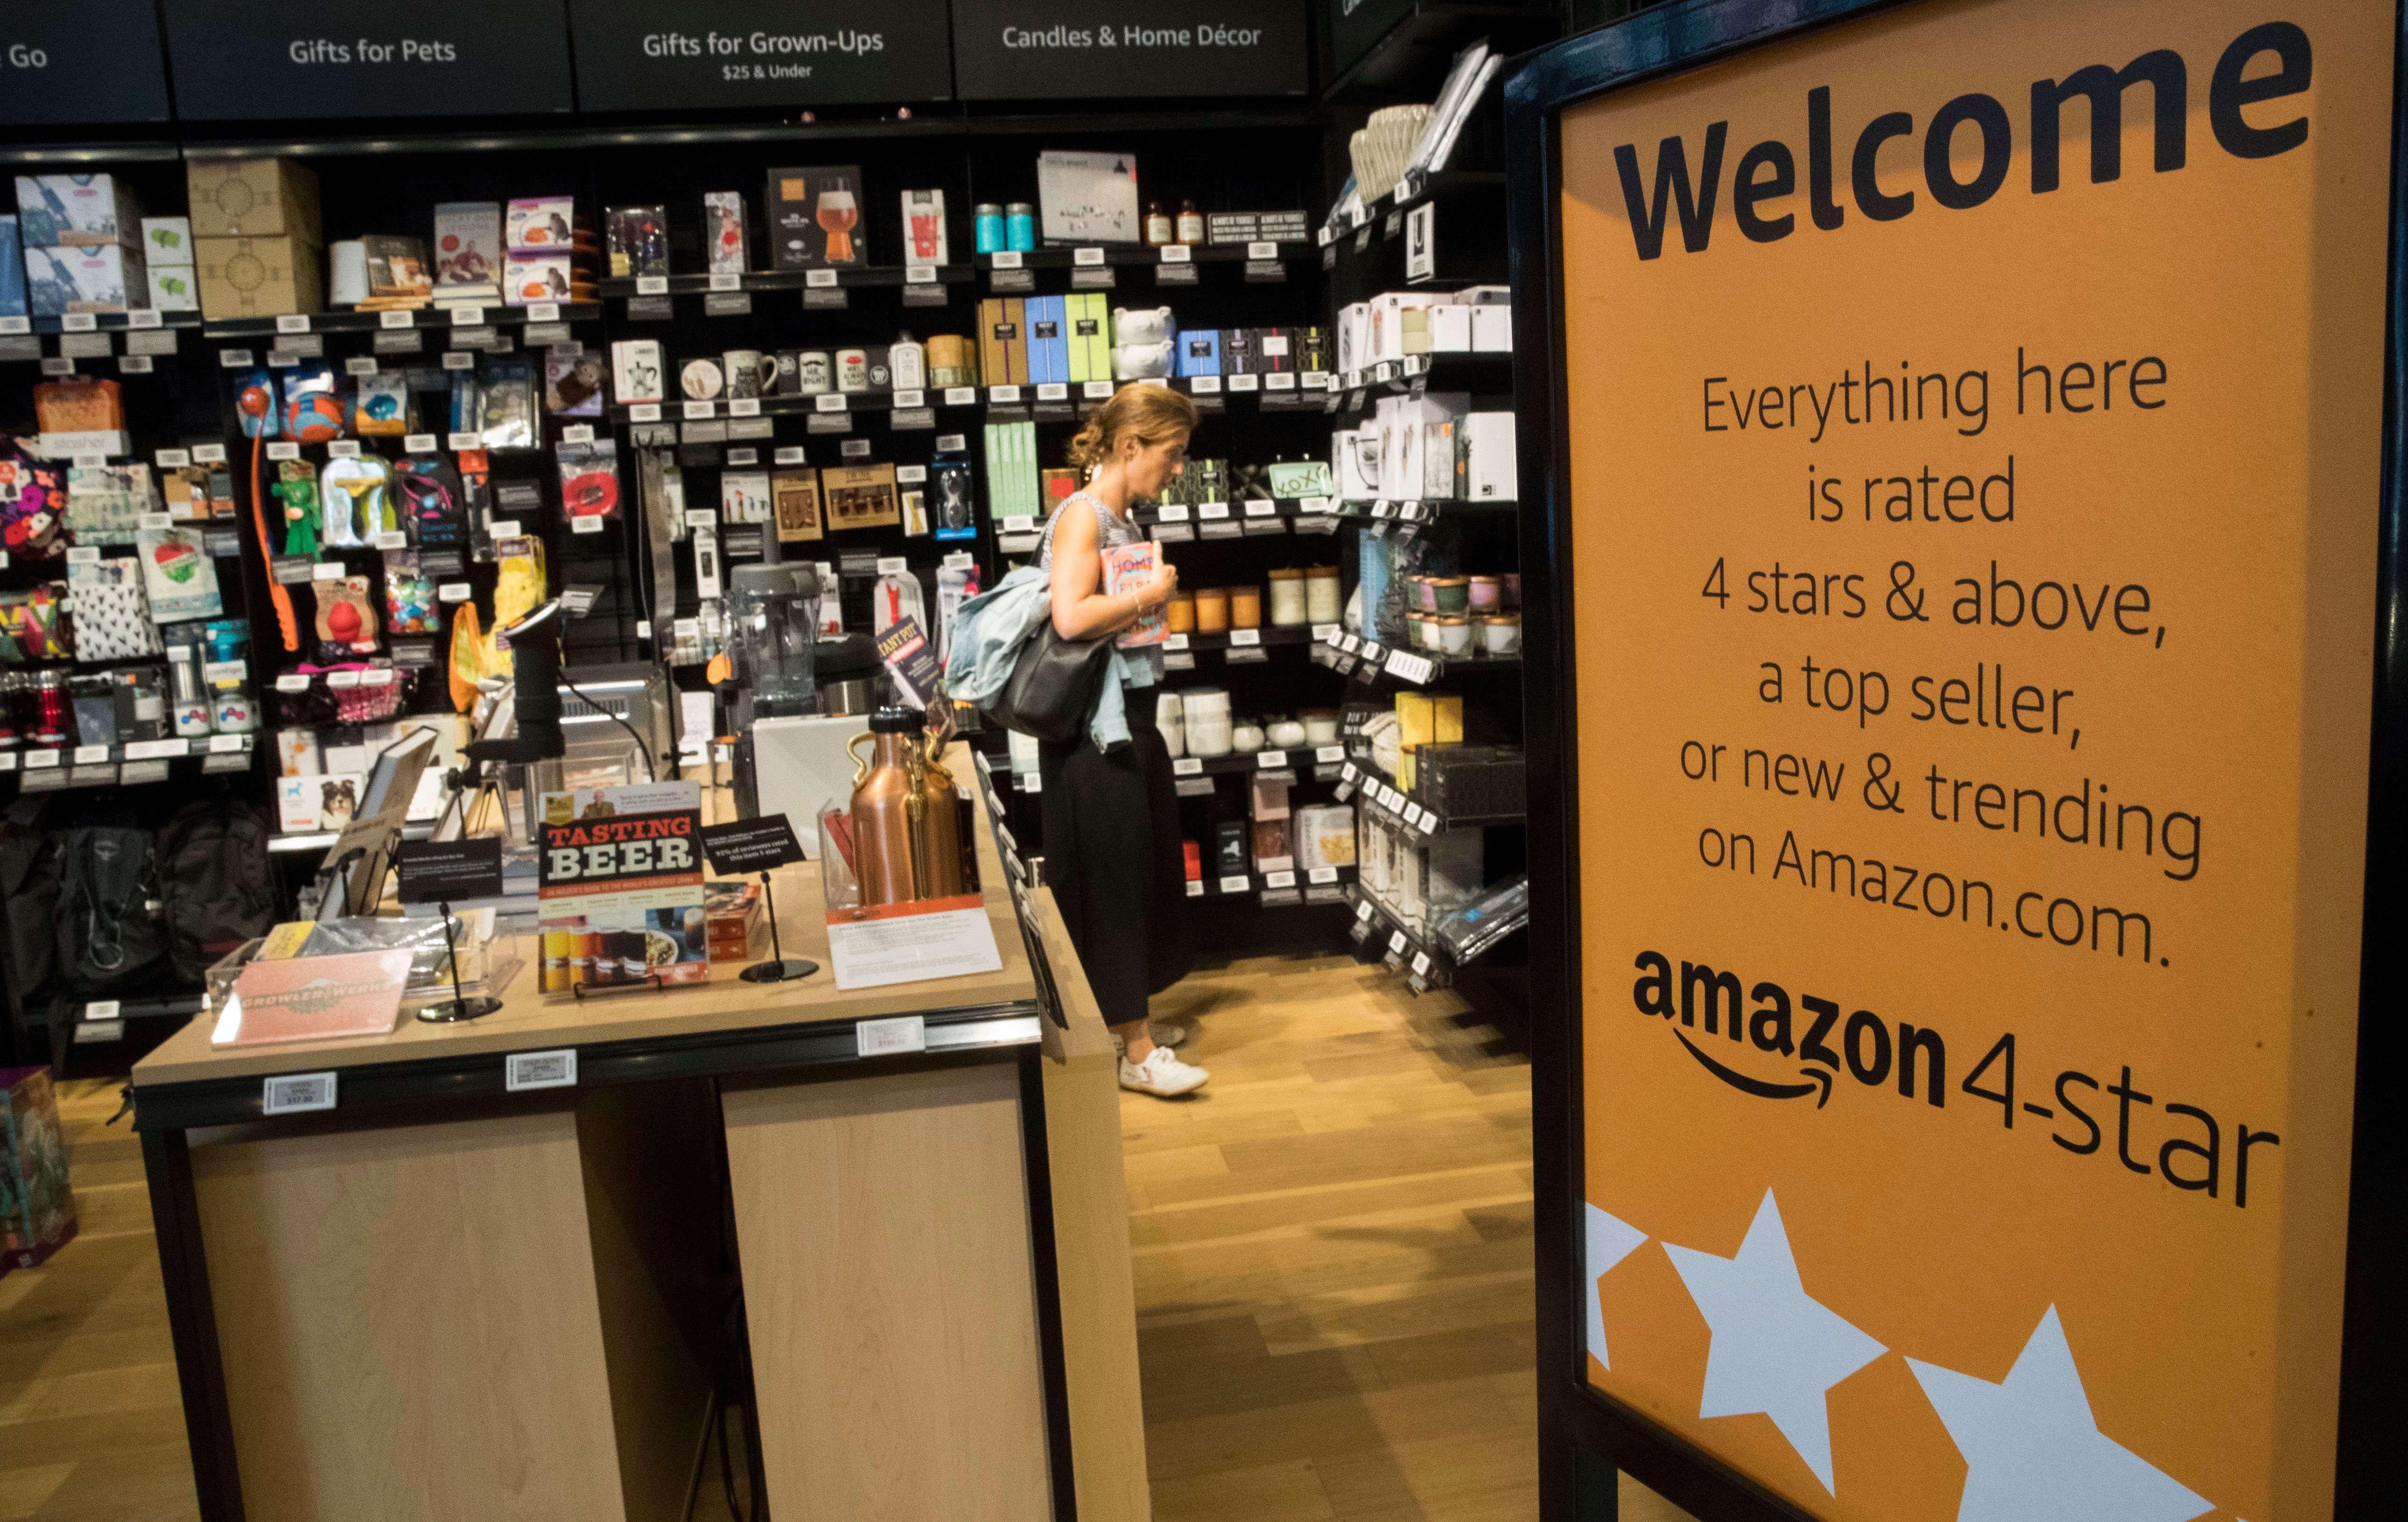 A shopper browses the items on display at the Amazon 4-star store